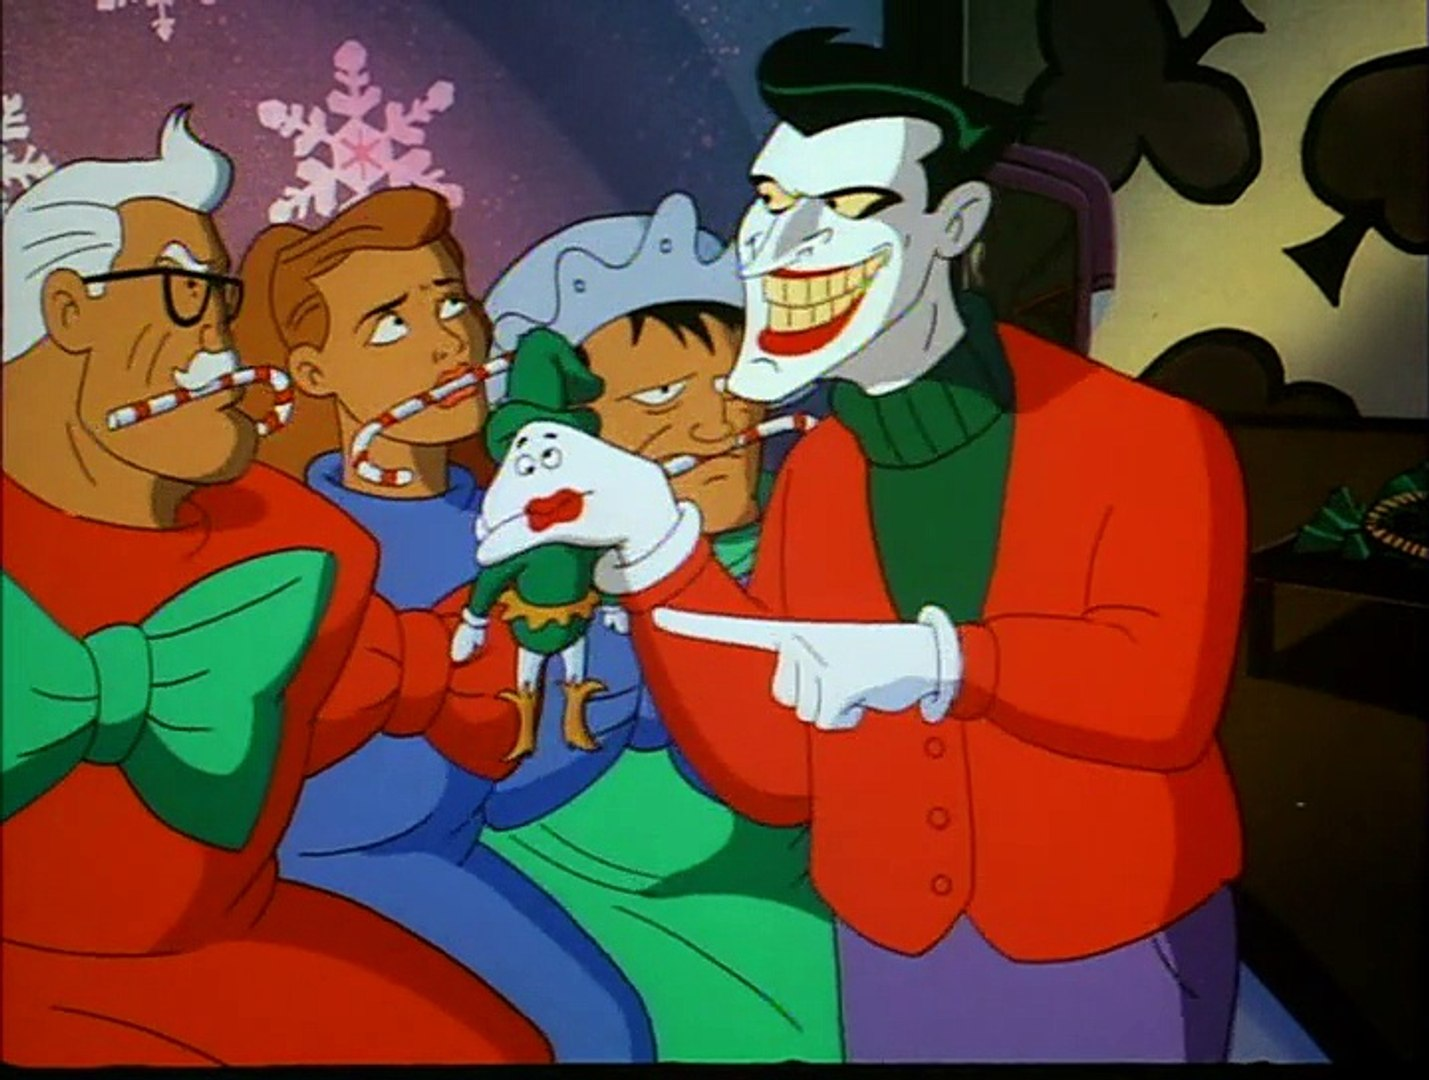 Christmas With The Joker.Batman T A S S01 E02 Christmas With The Joker